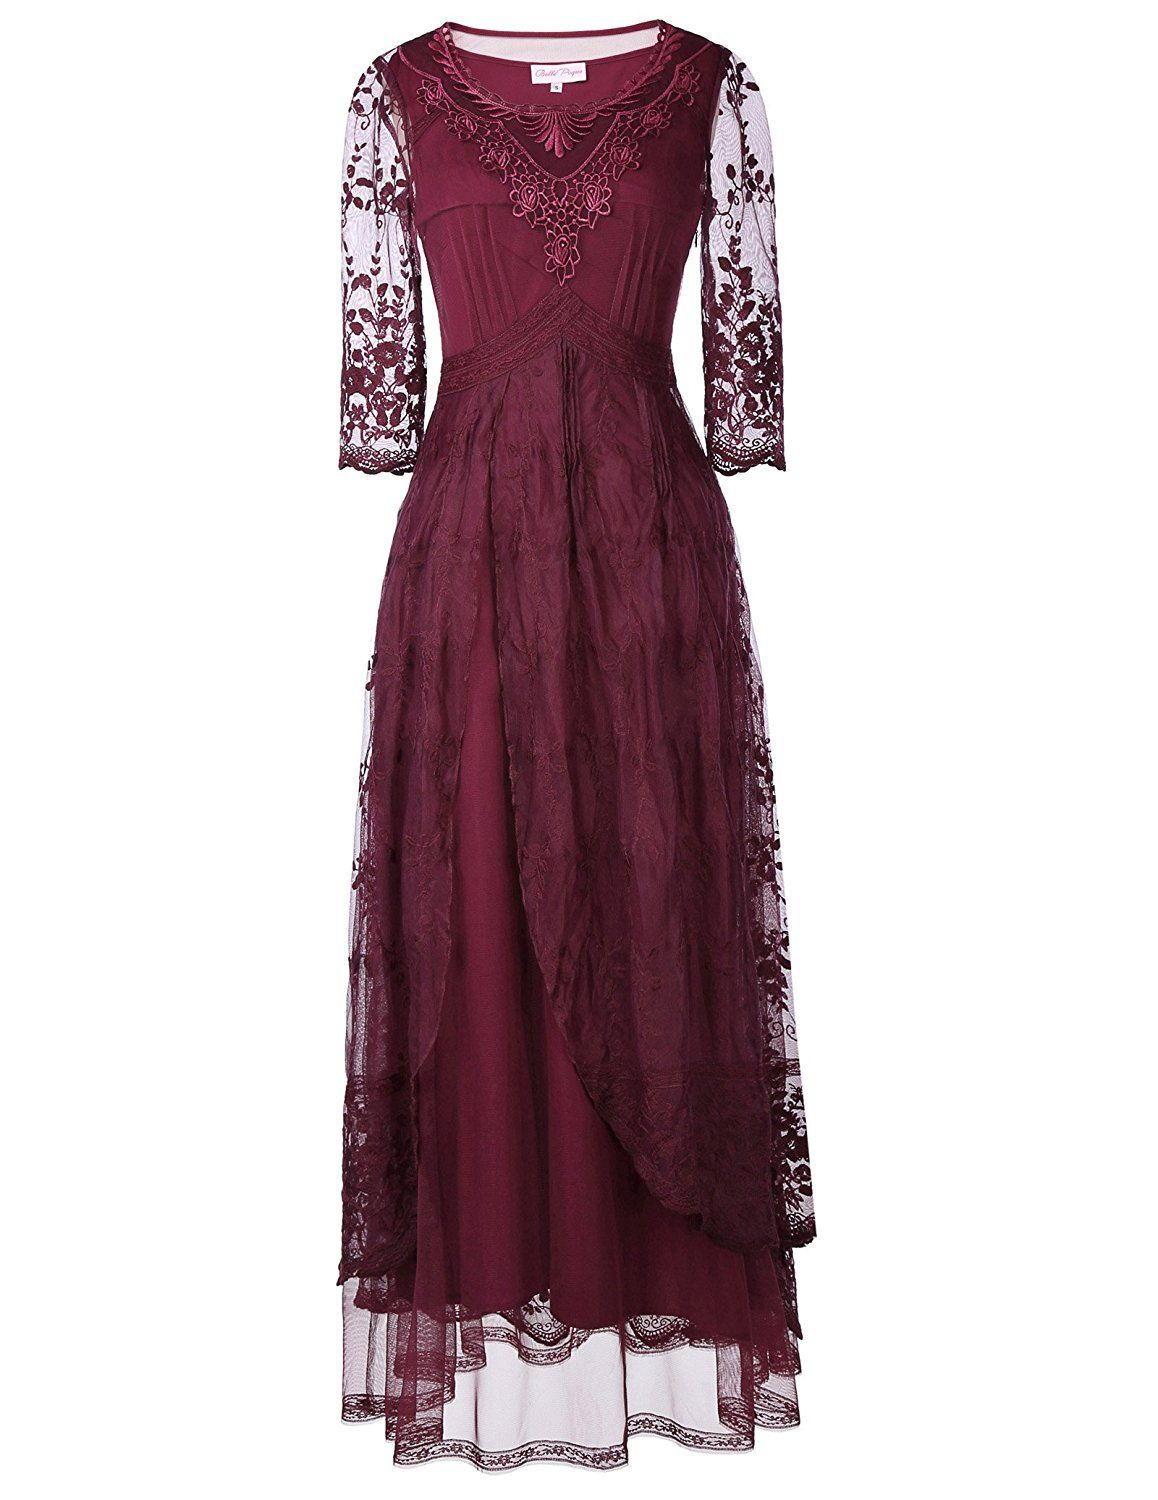 Belle Poque Steampunk Gothic Victorian Lace Maxi Dress 3/4 Sleeve ...